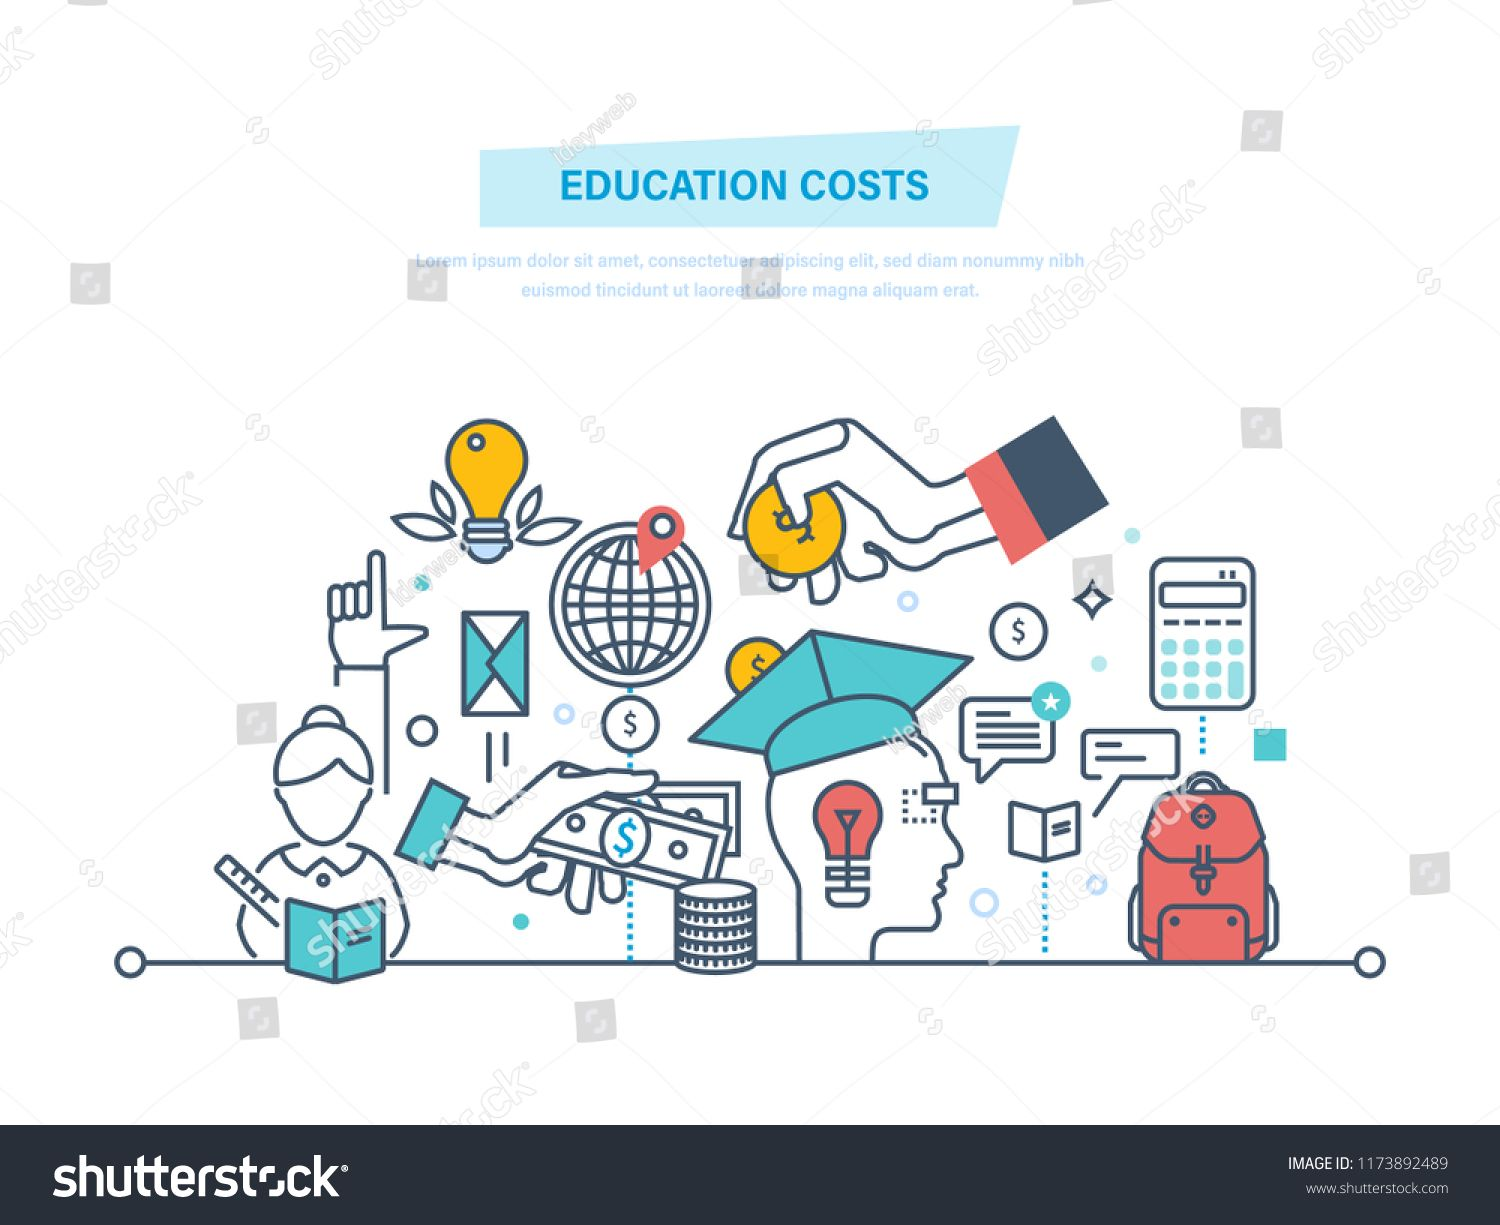 Education Cost Concept Invest Money In Education Study Cash Tuition Fees Tax Pay Spending Education Money Investme Investing Money Investing Tuition Fees